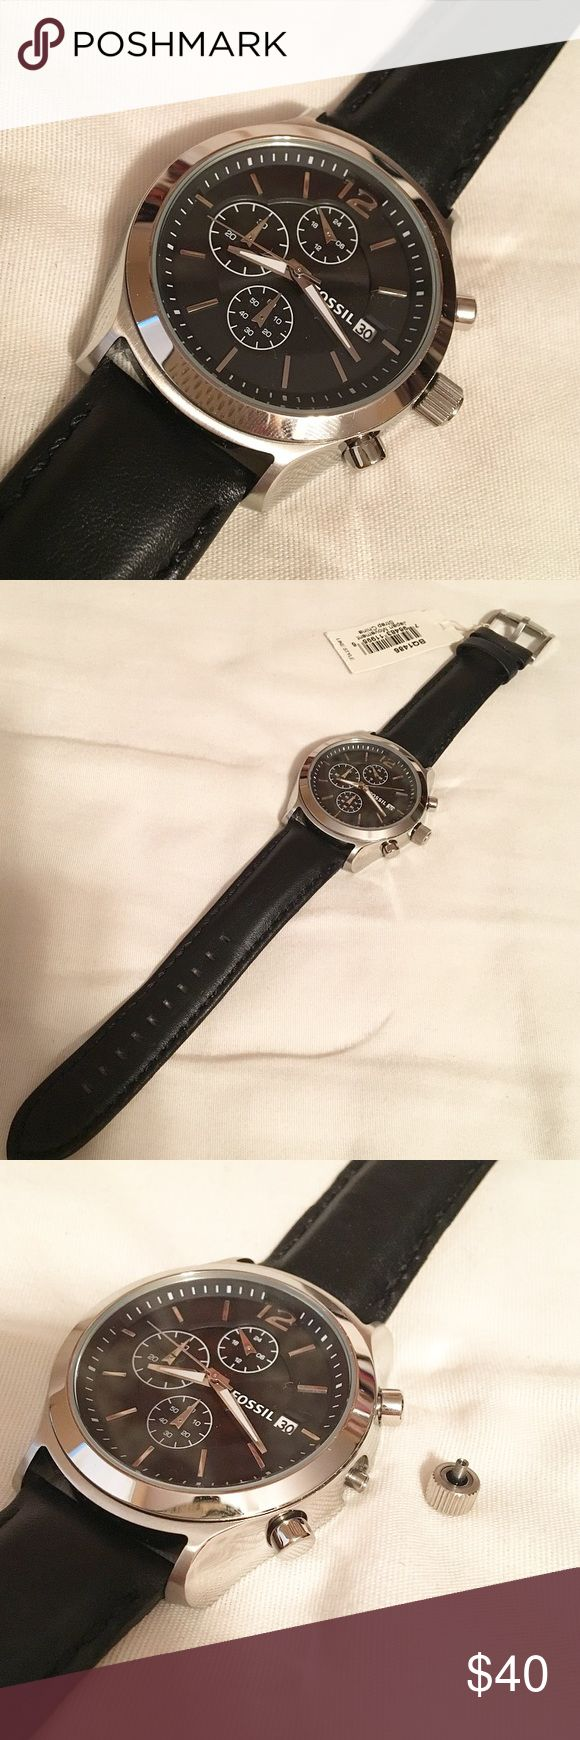 Leather Fossil Watch Mens black genuine leather Fossil watch with chronograph feature inside the face. Stainless steel hardware. Brand new and never used - tags still attached! Battery works but stem has fallen off (see picture 3). Watch sill works with stem out but can be repaired for $8.50 through Fossil! Authentic. No trades! Fossil Accessories Watches